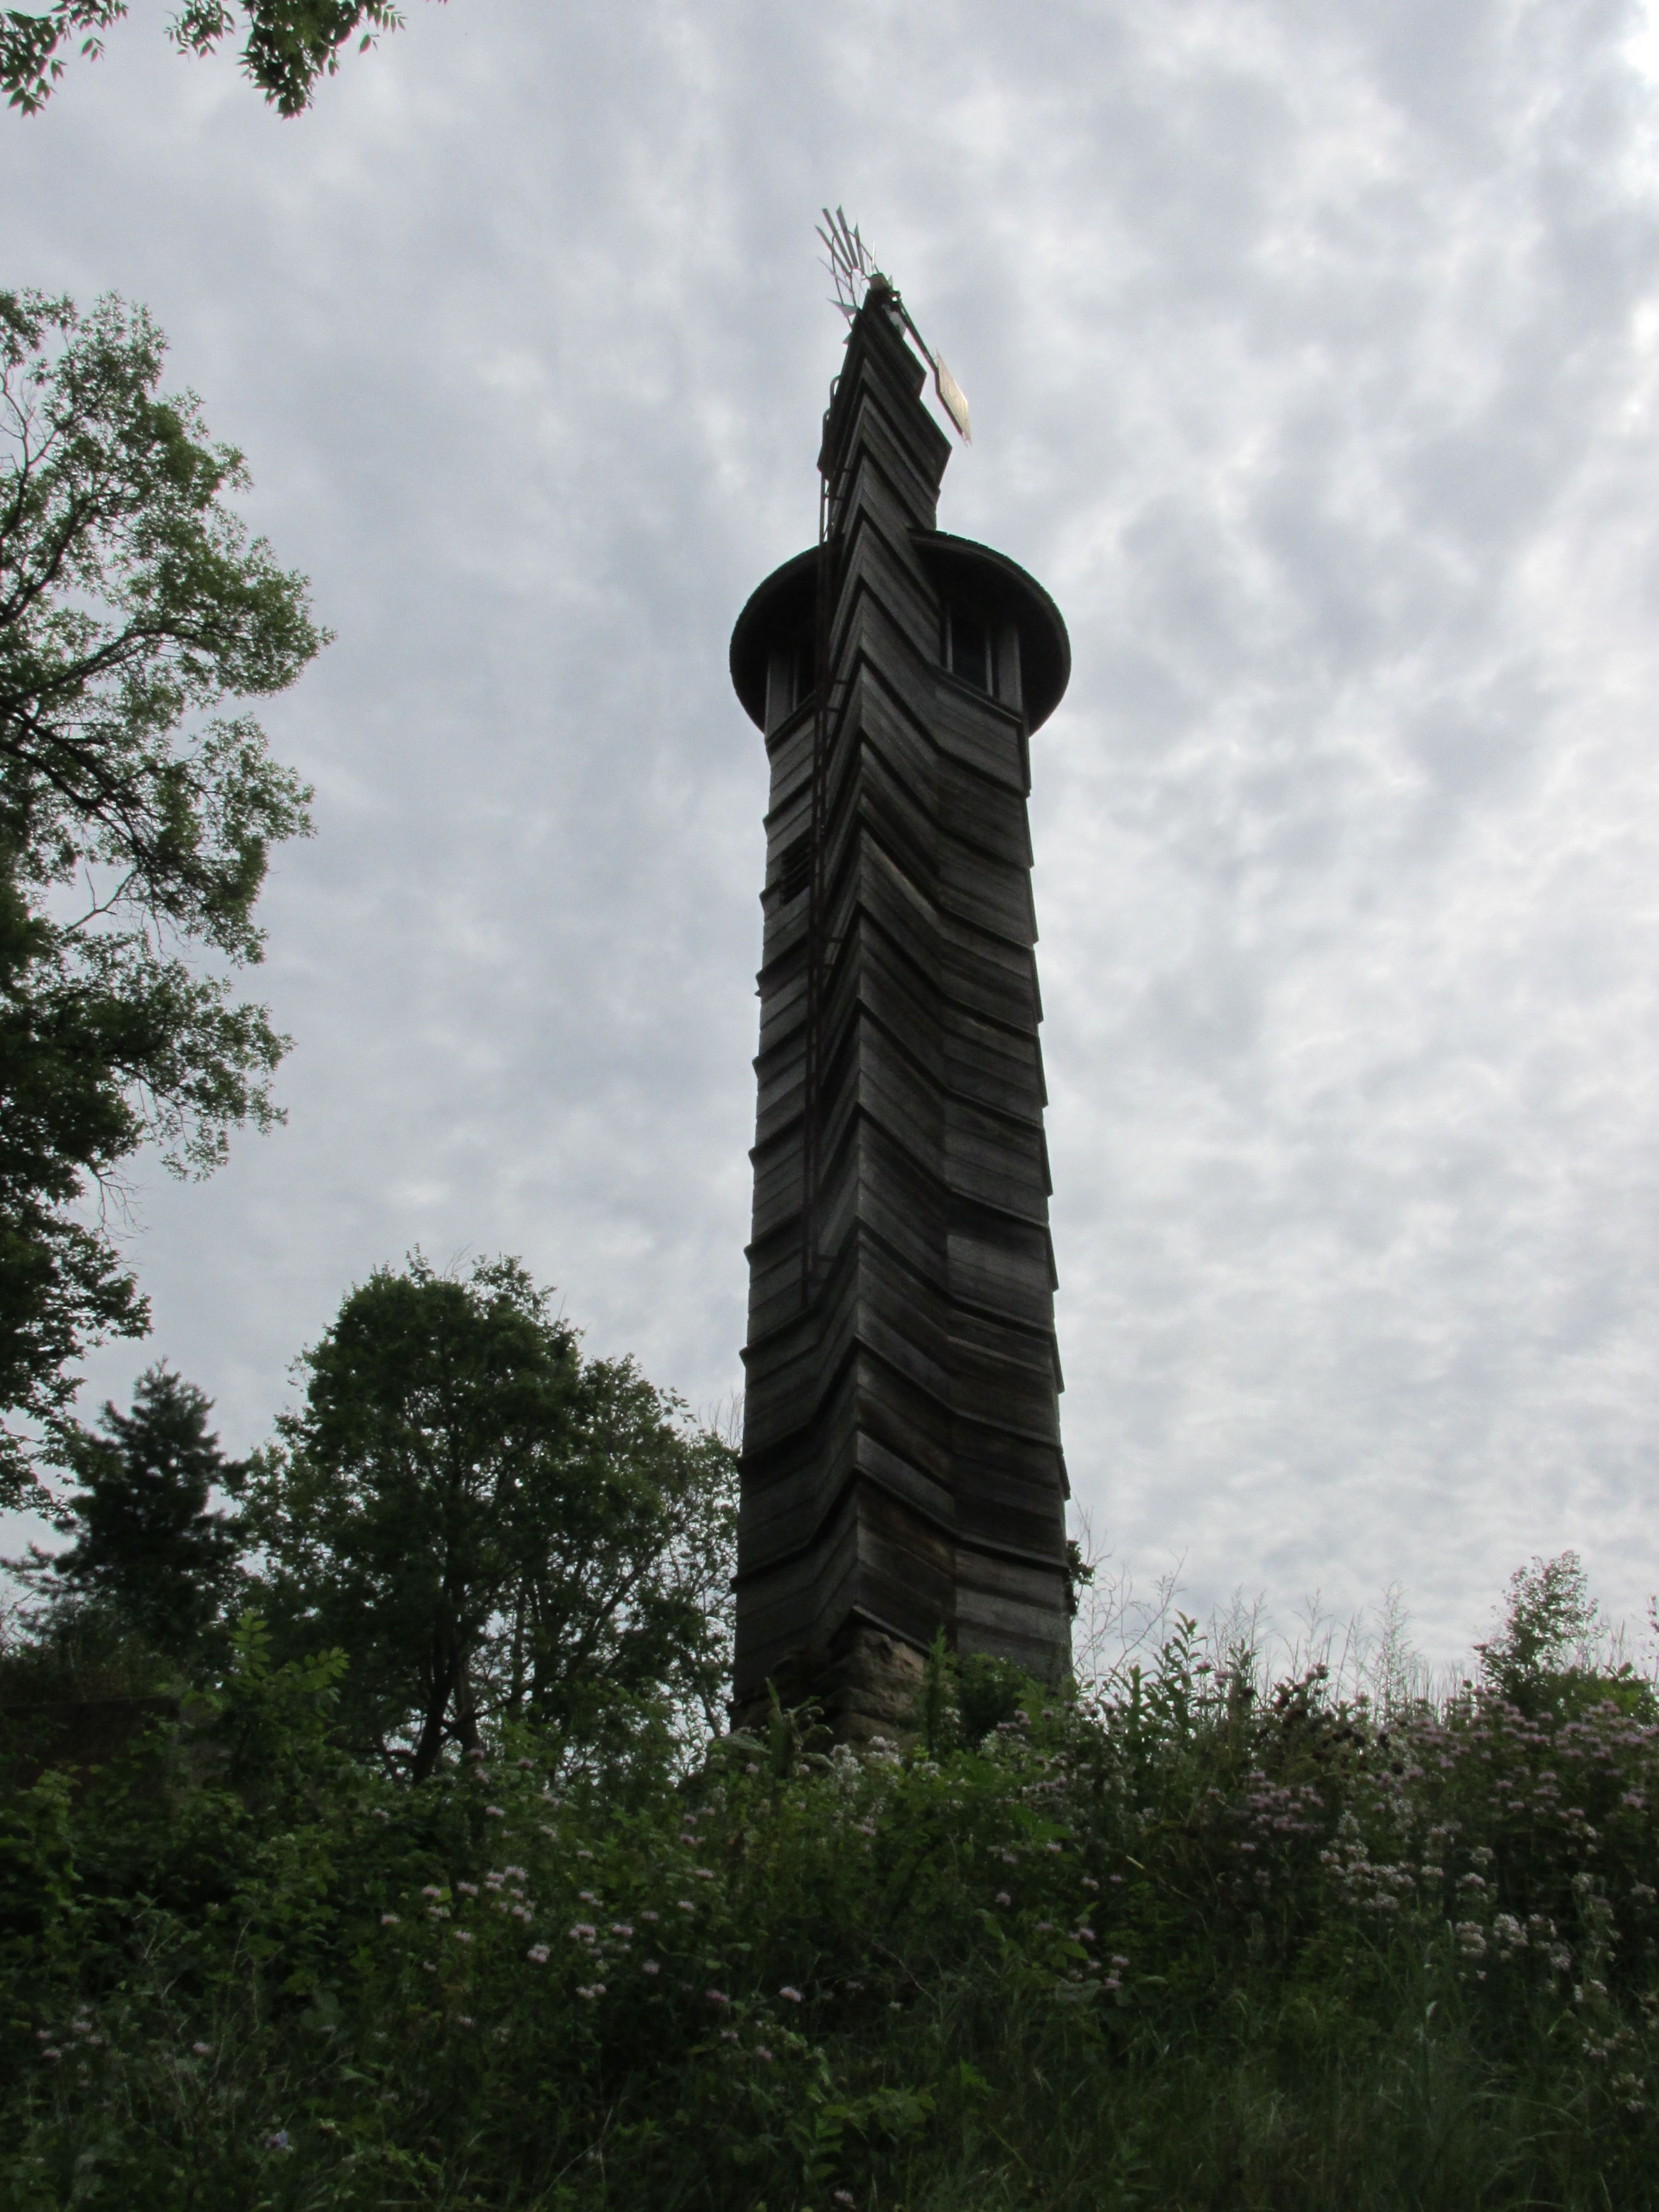 T- Romeo and Juliet tower bowside